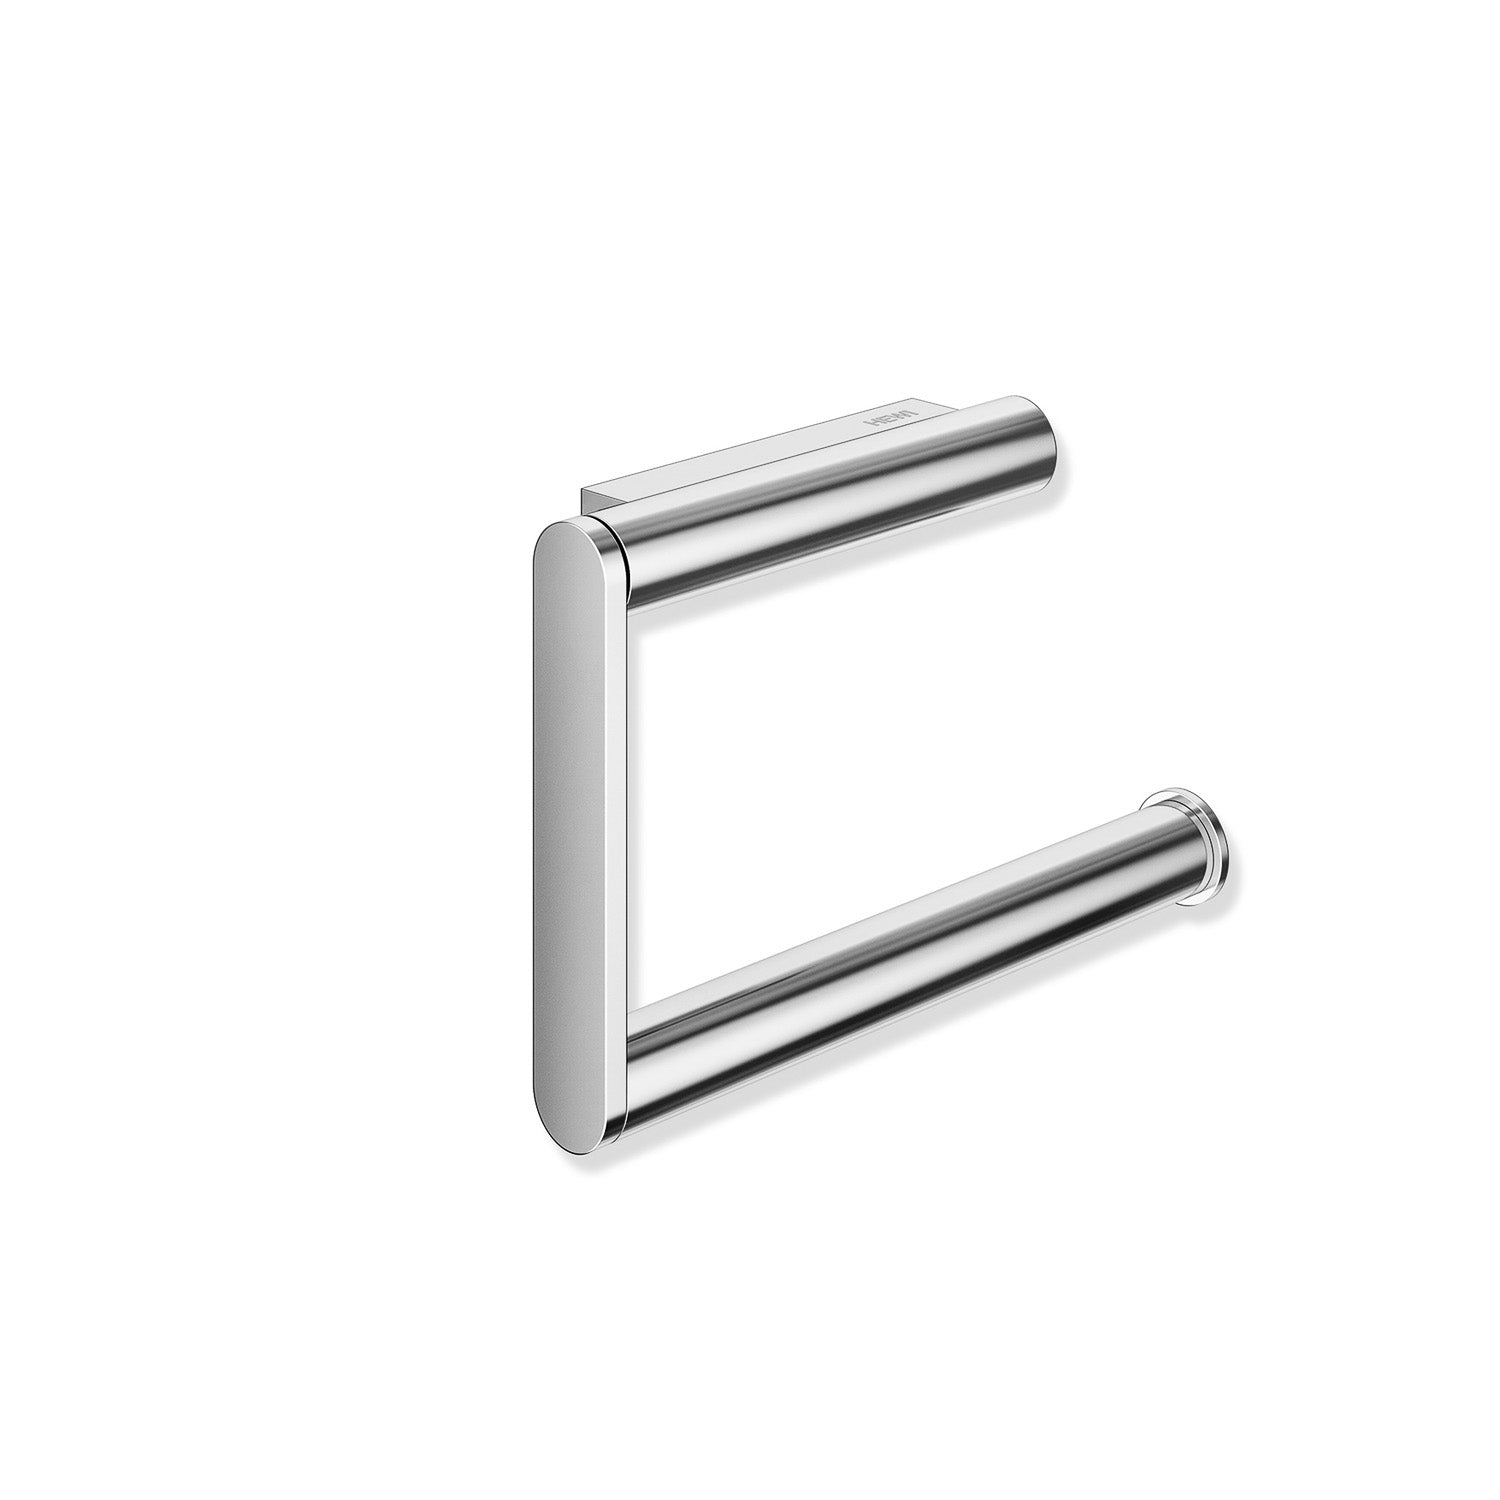 Freestyle Hinged Toilet Roll Holder with a chrome finish and no cover on a white background